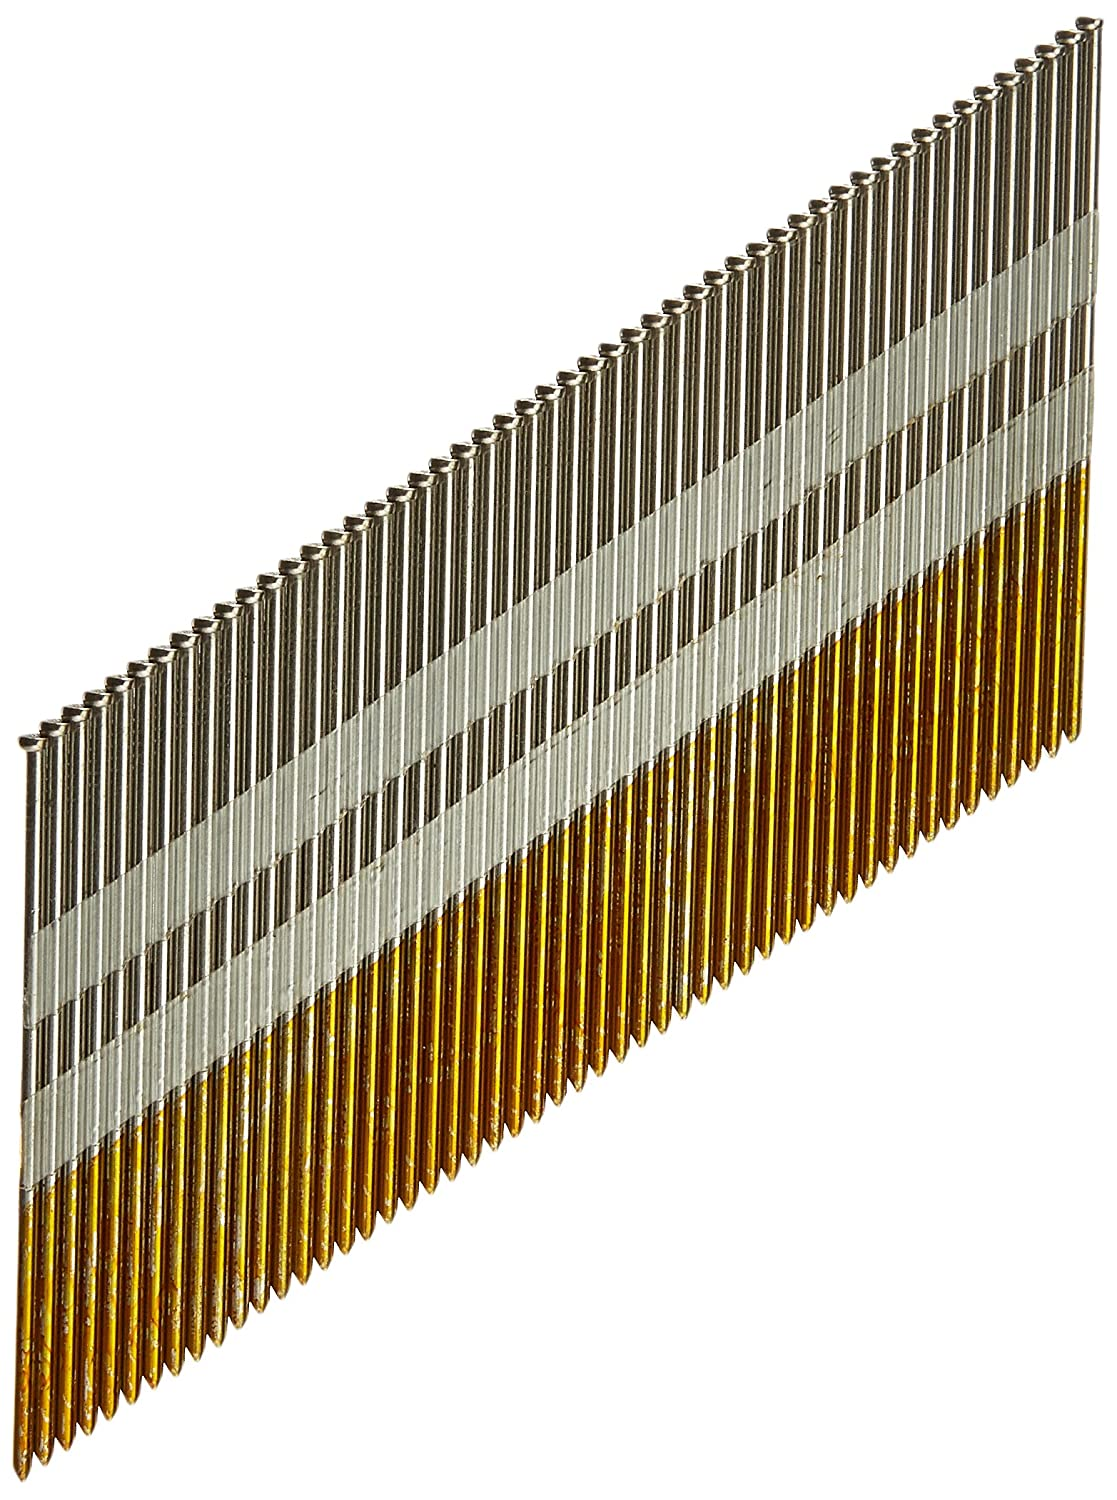 Simpson Swan Secure T15N250SFB 15-Gauge Angle DA Series 316 Stainless Steel 2-1/2-Inch Finish Nails, 500 Per Box